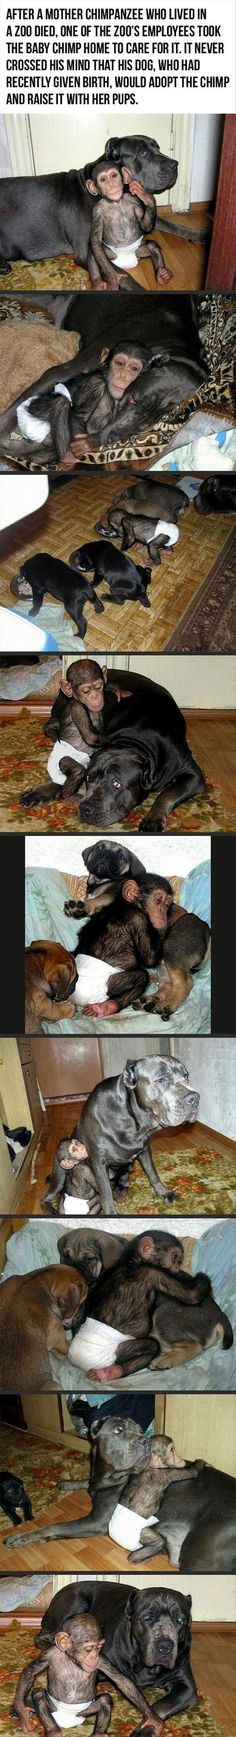 Mother dog and baby chimp- so sweet